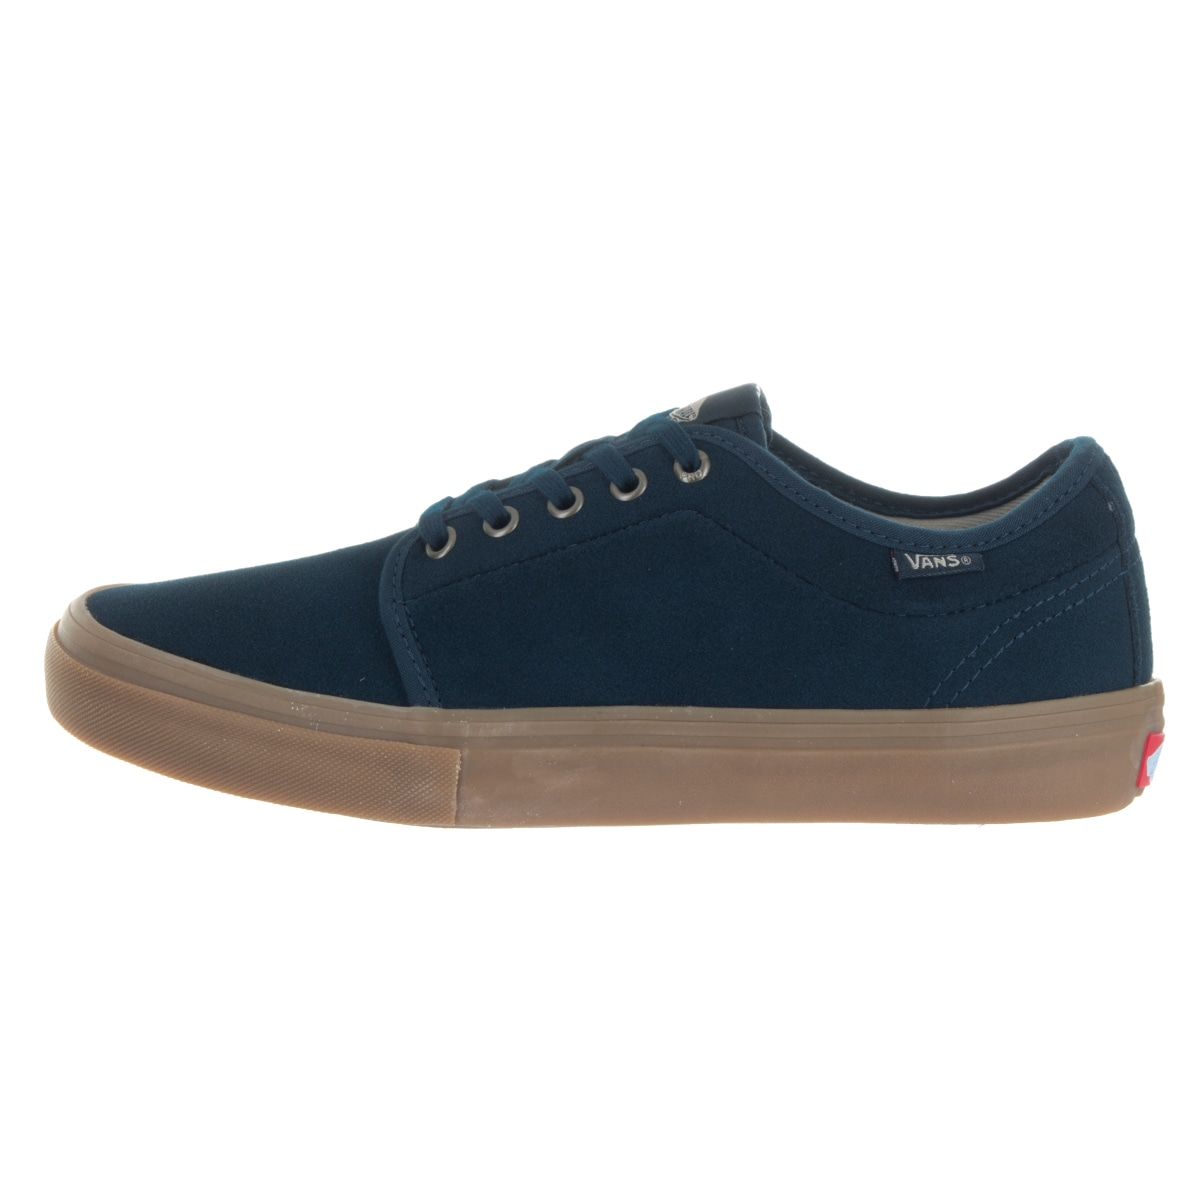 6aaa90f23d Shop Vans Men s Chukka Low Pro Dr Blue Suede Skate Shoes - Free Shipping  Today - Overstock - 13478135